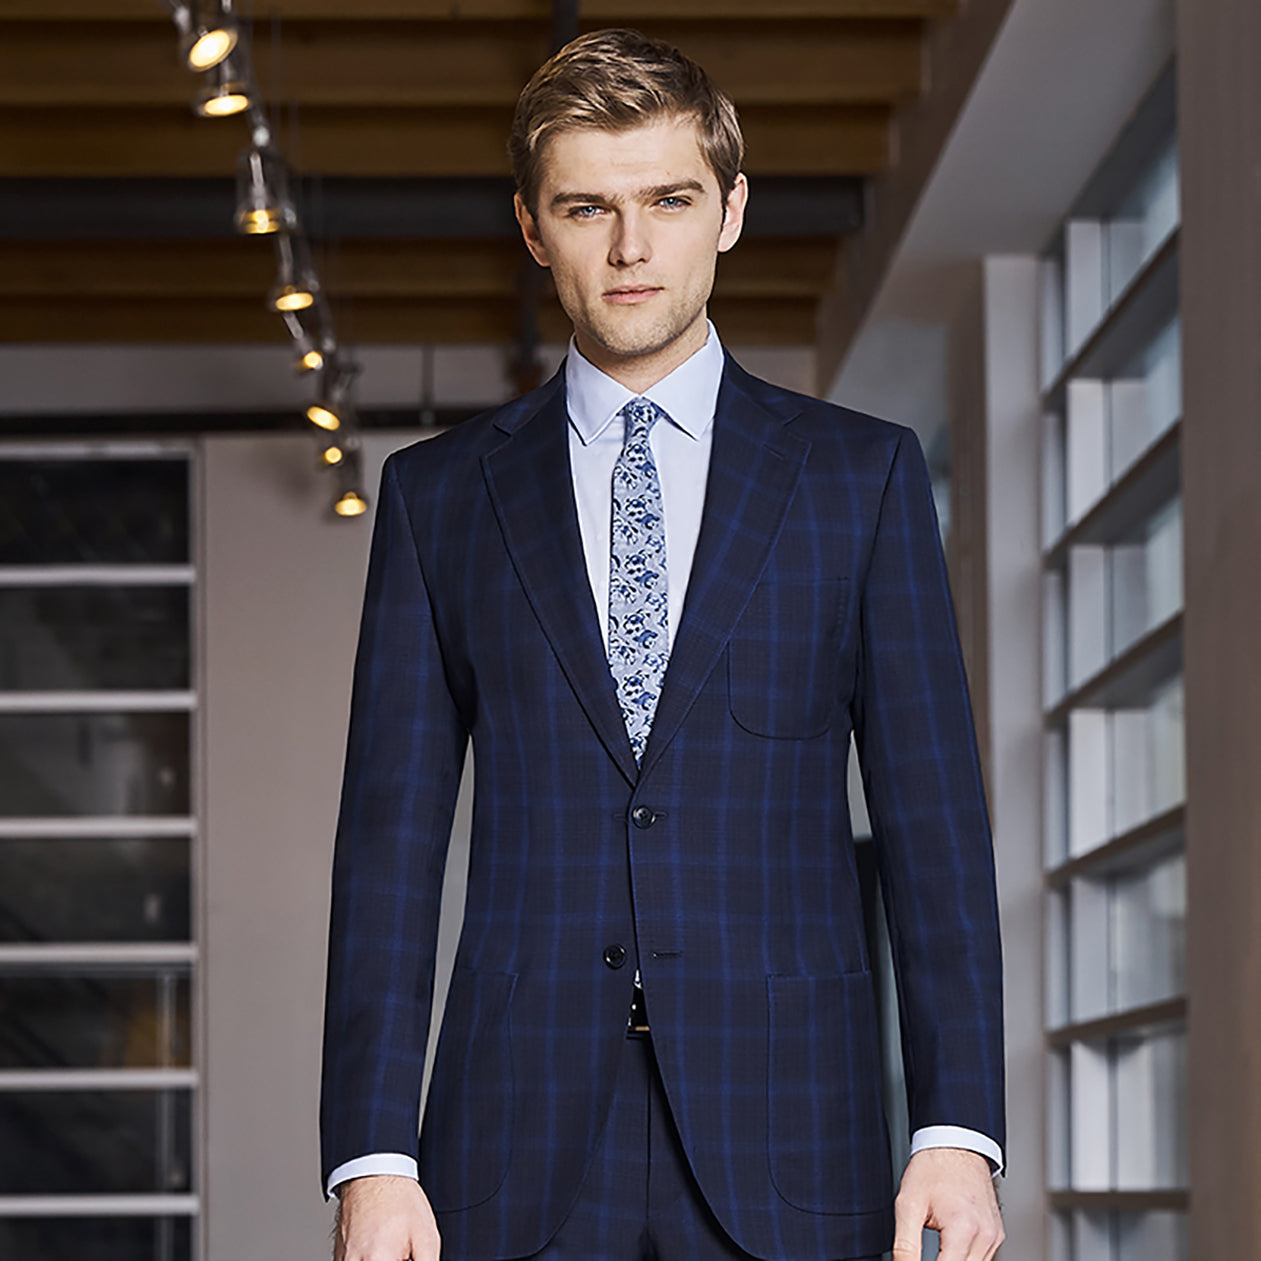 939589600 High Quality Mens Clothing & Menswear | Ticknors Mens Clothiers